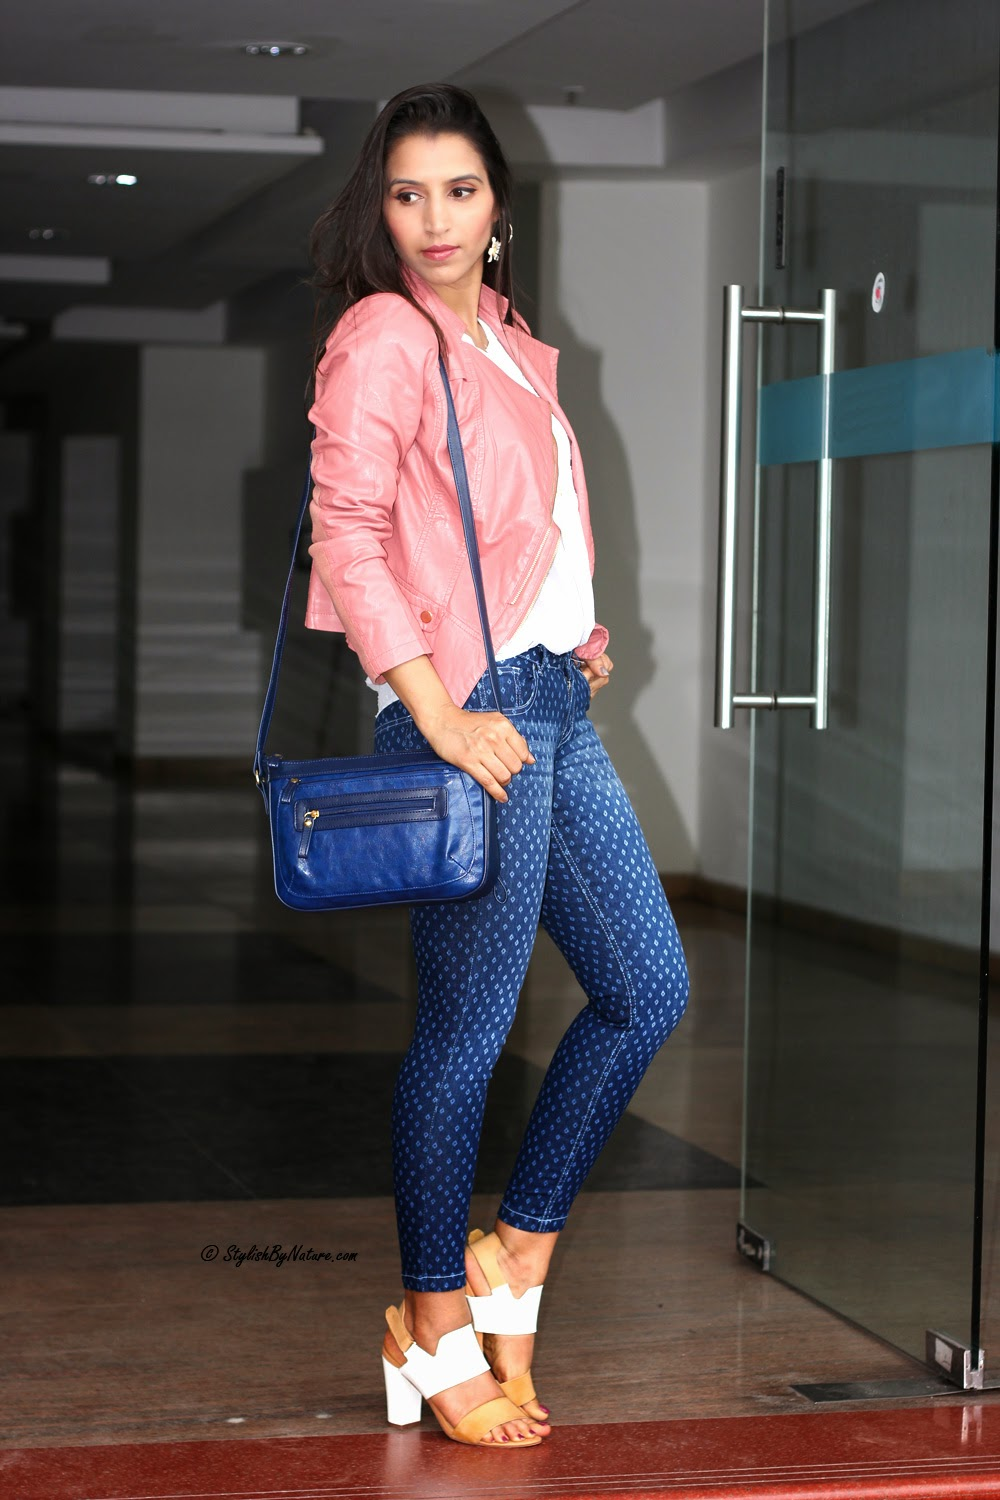 http://www.imagesbags.com/collections/fashion/products/elisa-s2101-blue